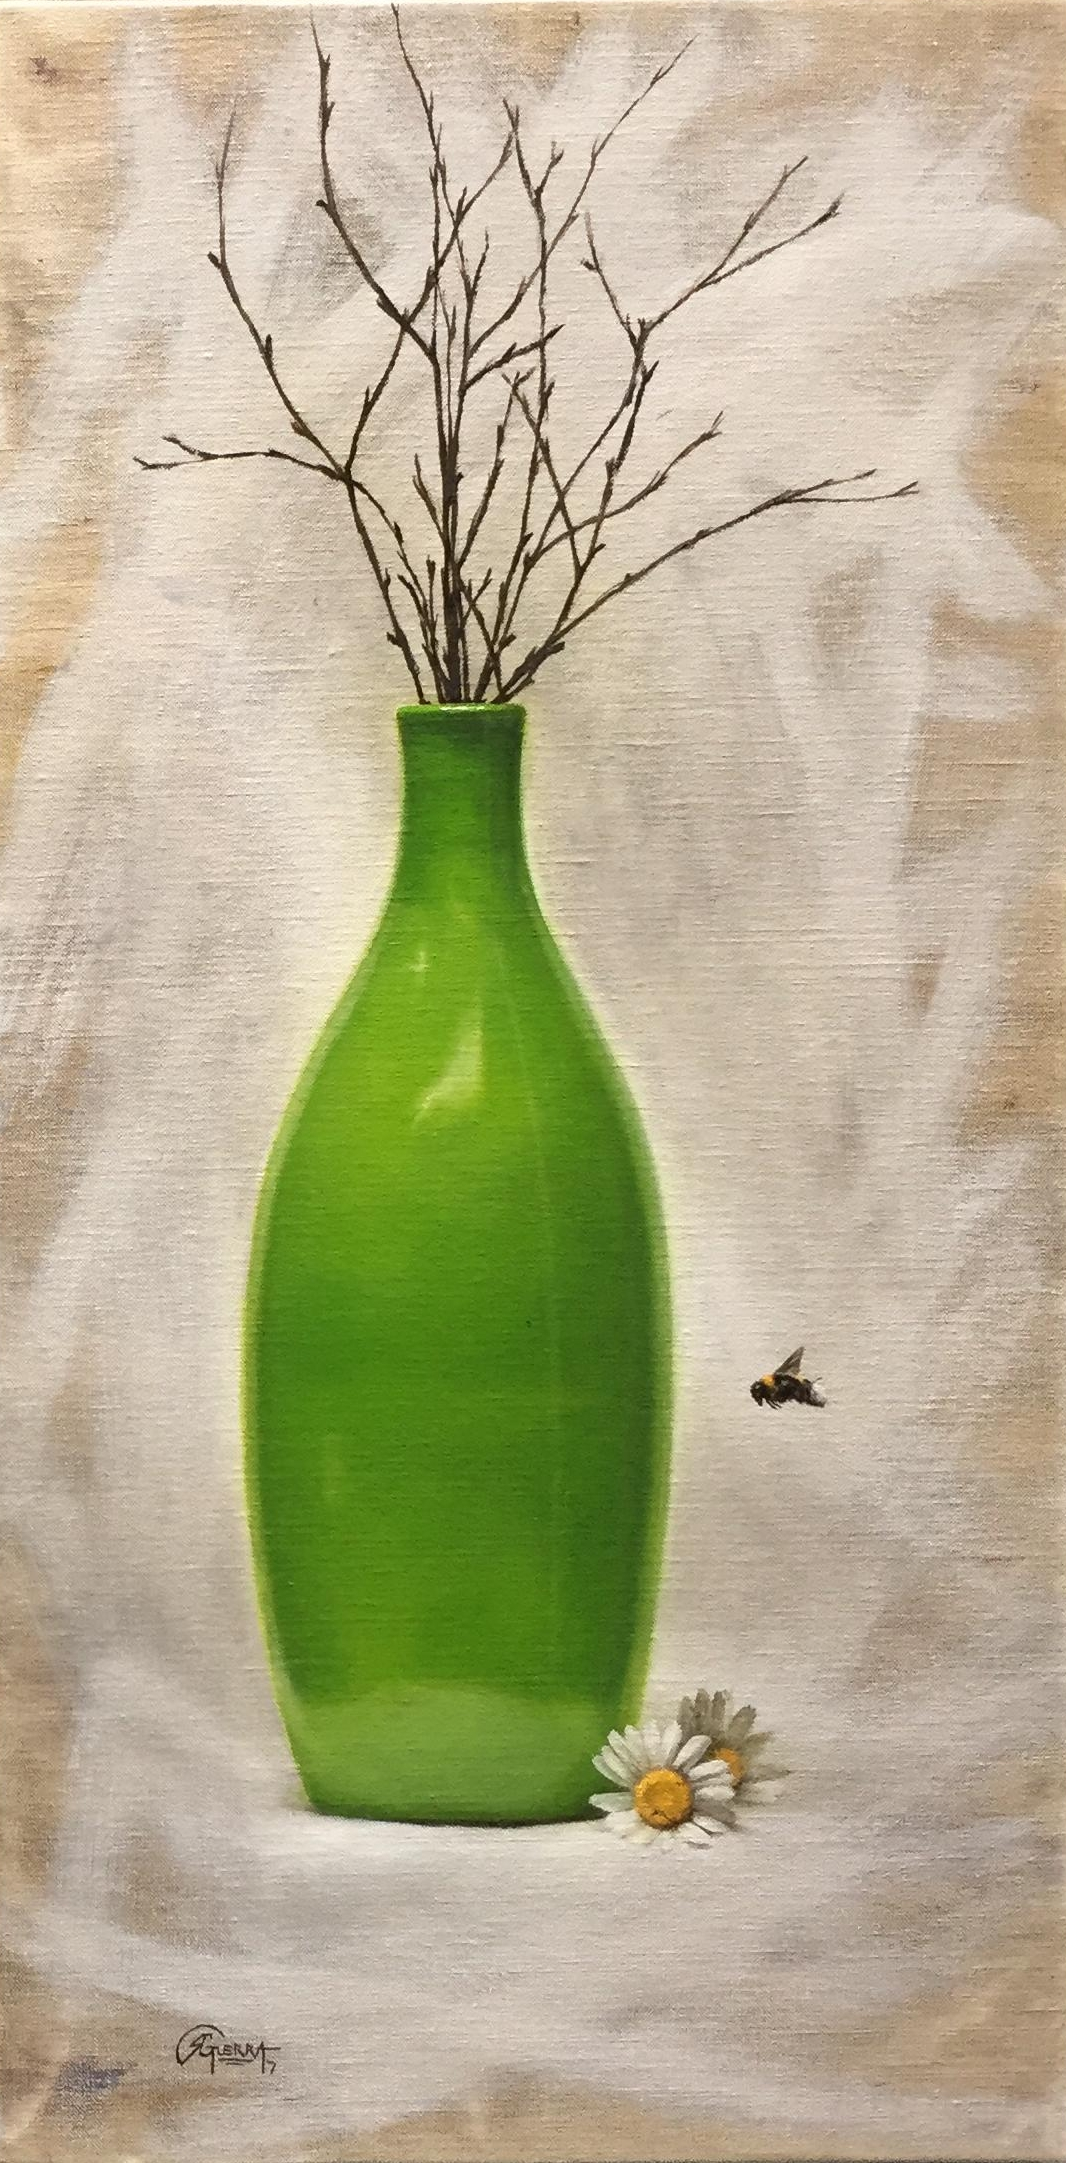 The Green Vase and the Bee, Rafael Guerra Painting